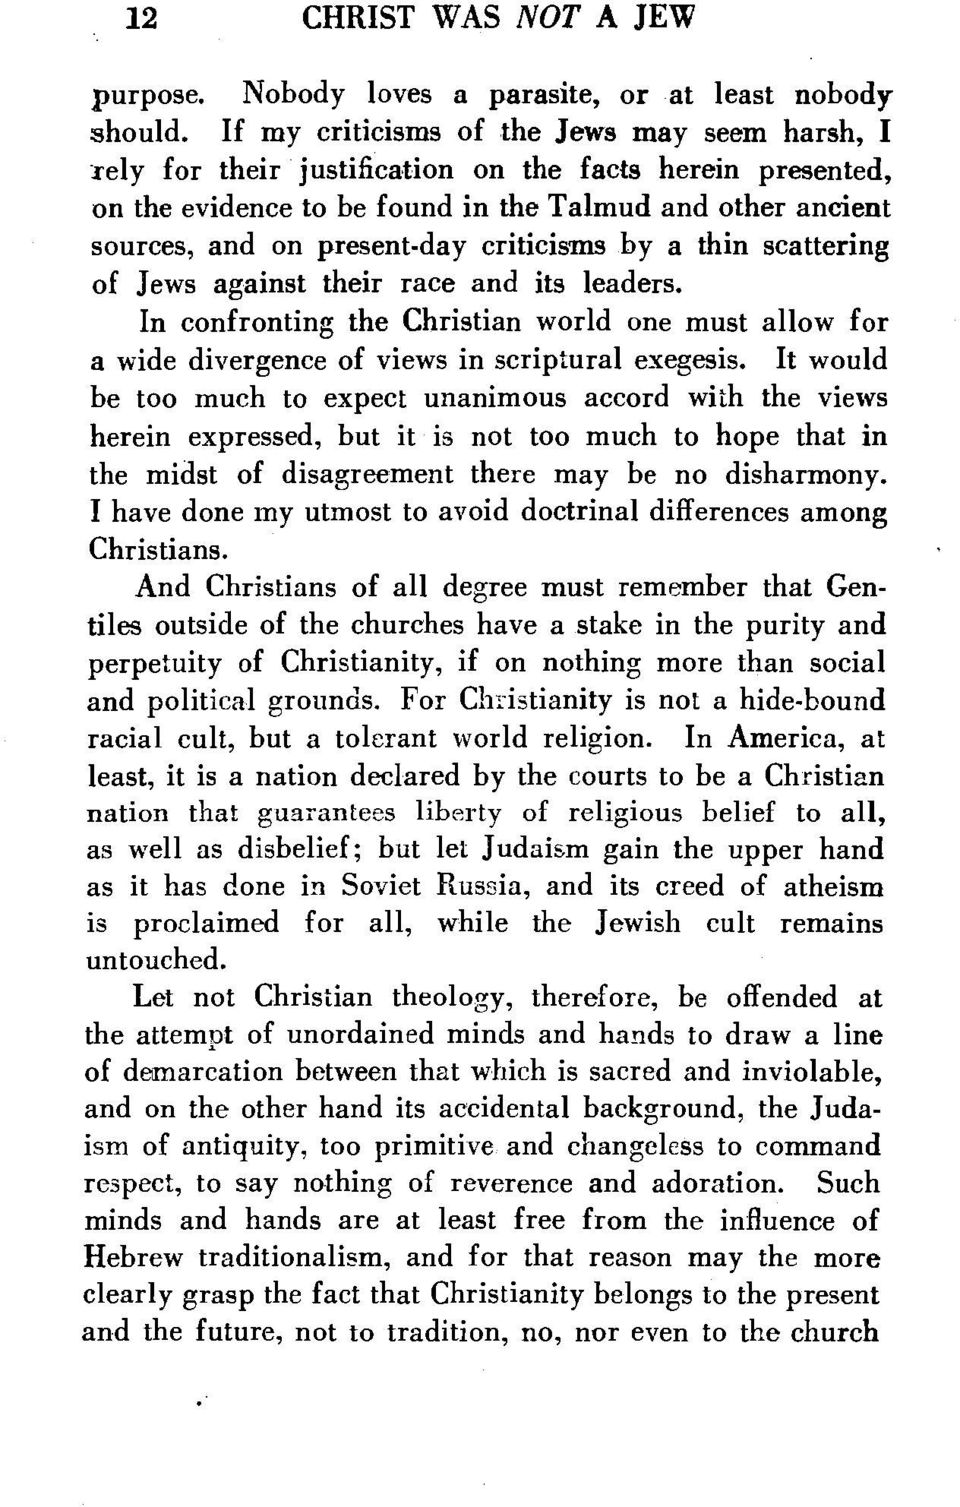 criticisms by a thin scattering of Jews against their race and its leaders. In confronting the Christian world one must allow for a wide divergence of views in scriptural exegesis.